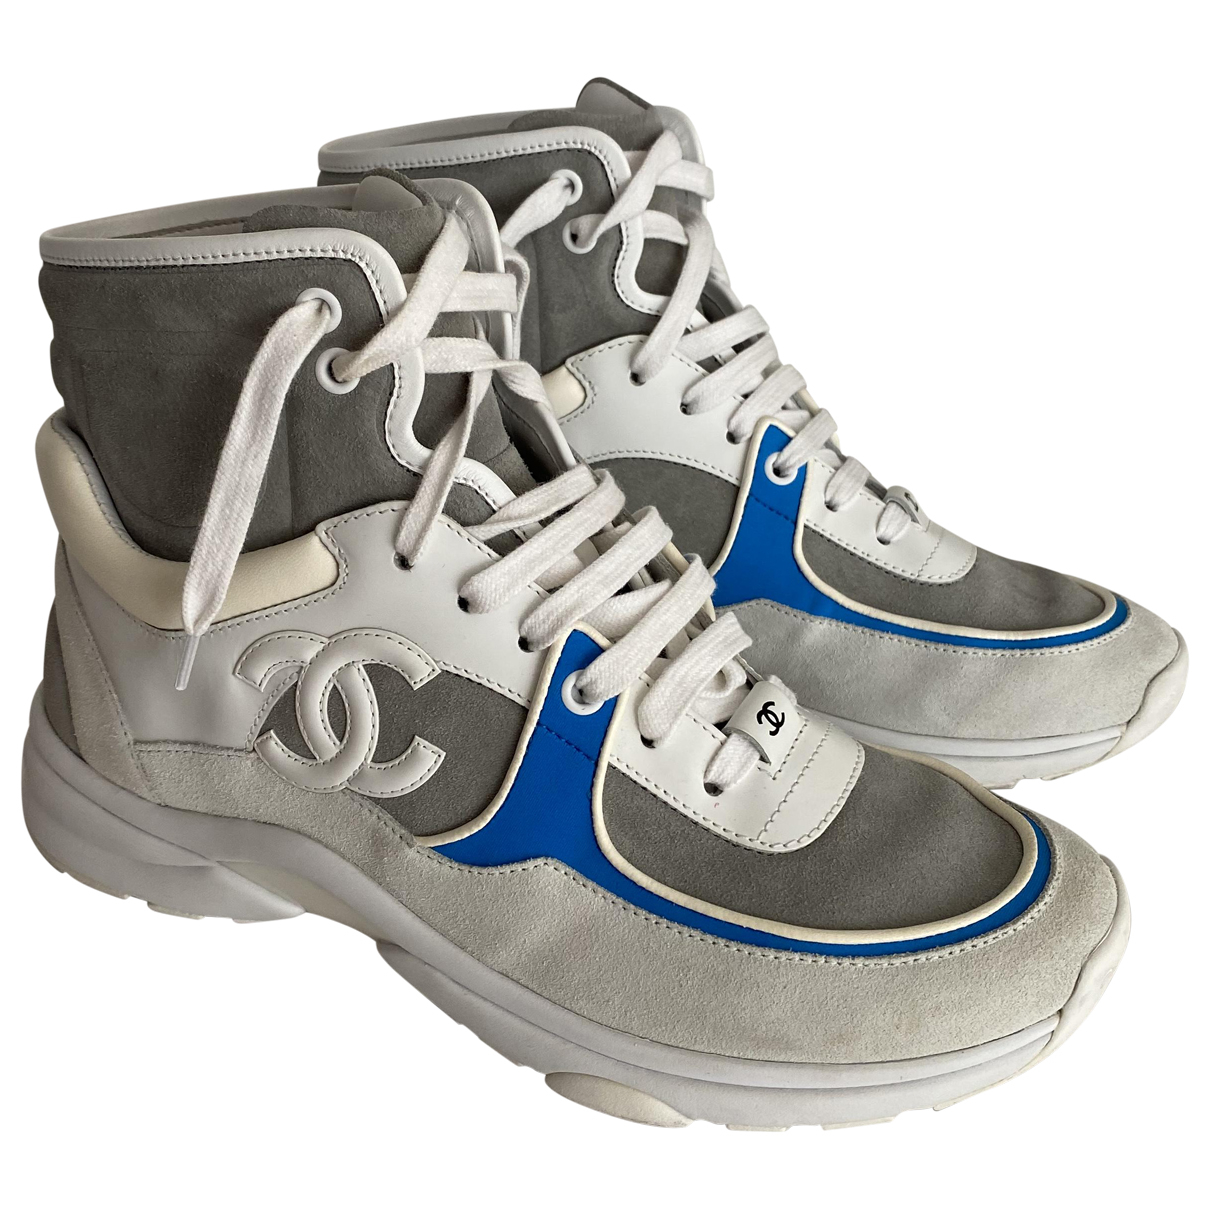 Chanel \N Grey Leather Trainers for Women 39 EU